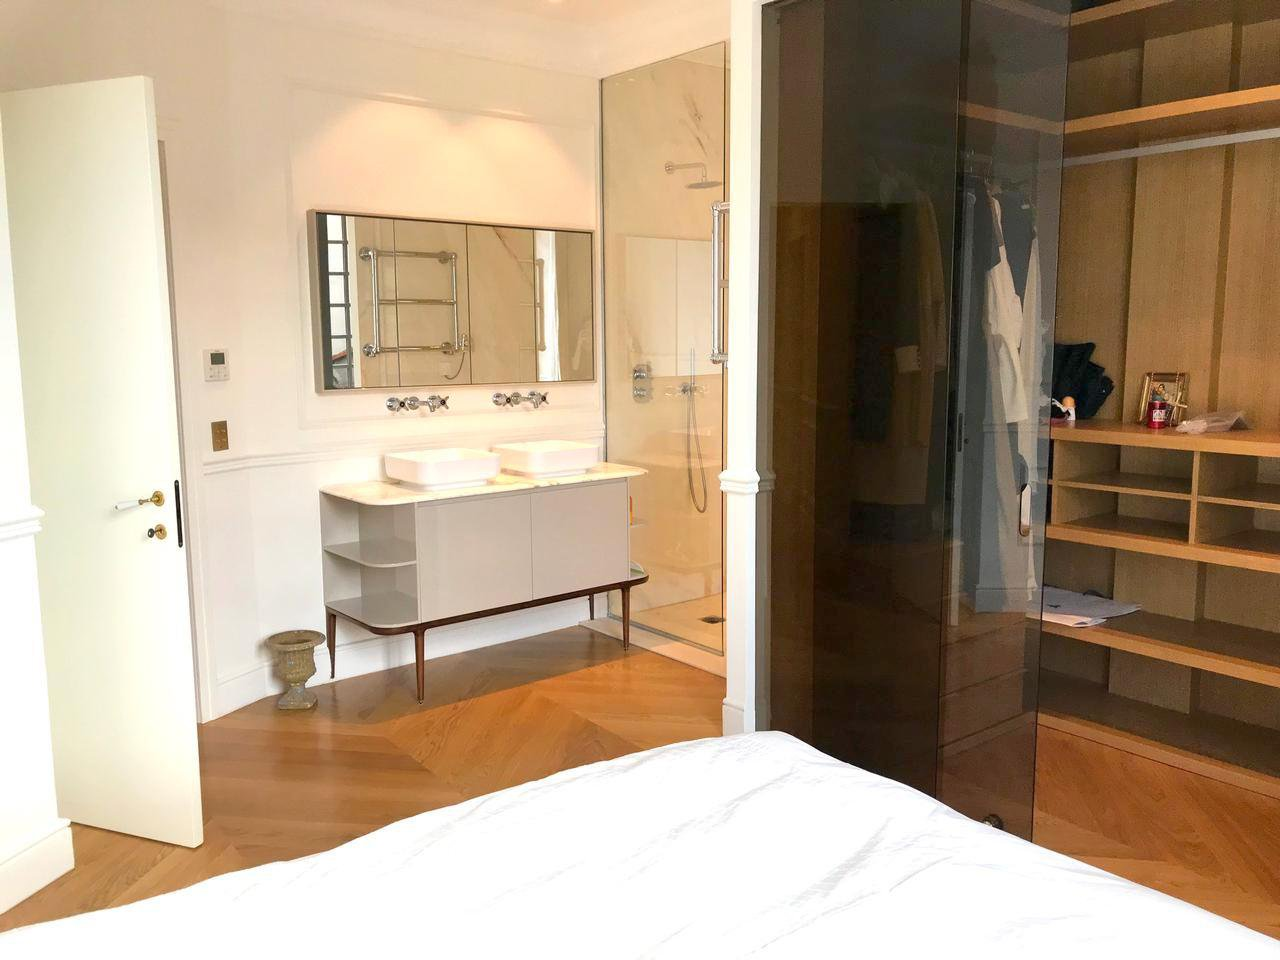 SALE APARTMENT 3 ROOMS NICE PLACE GARIBALDI HIGH-END BALCONIES